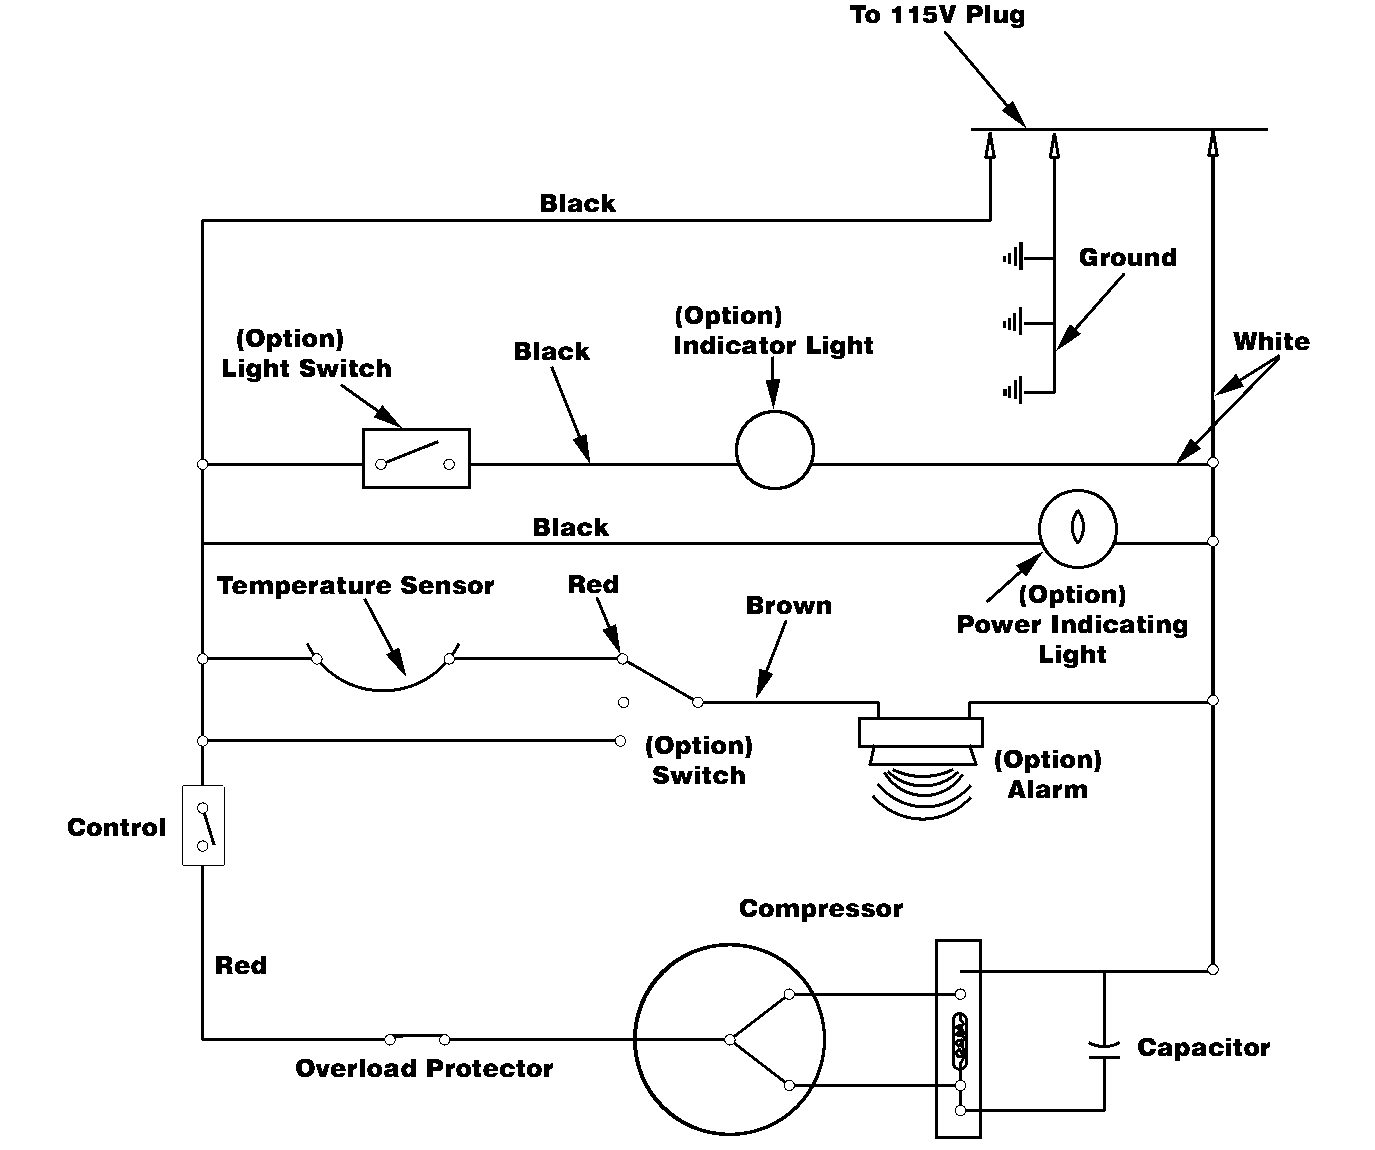 M0402352 00005?resize\=665%2C556 diagrams 7911024 lennox electric heater wiring diagram lennox lennox electric furnace wiring diagram at mifinder.co